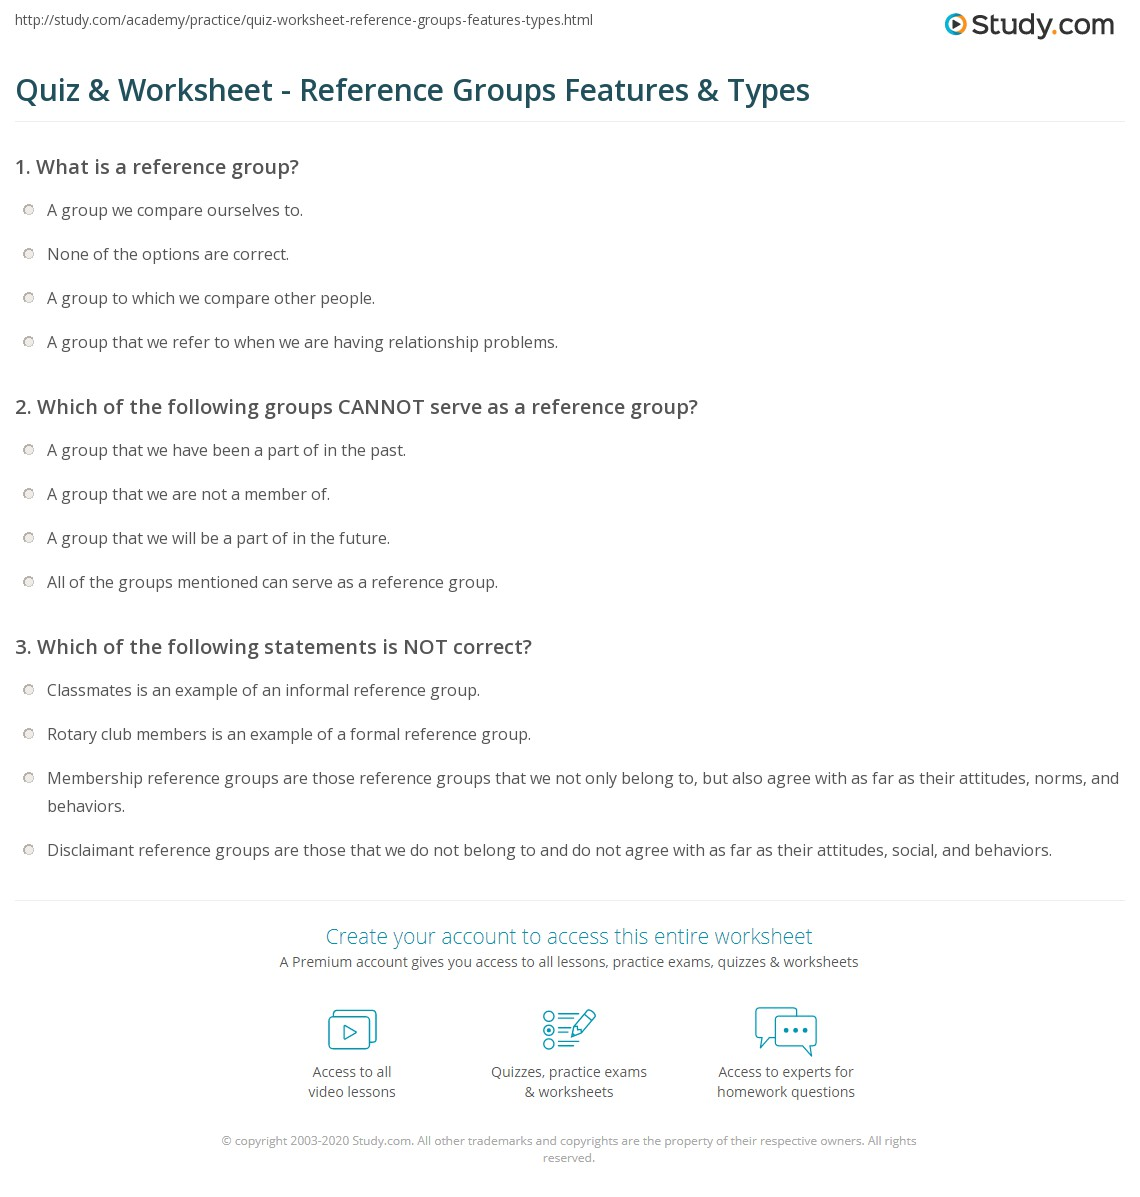 Quiz W Ksheet Reference Groups Fe Tures Types Study